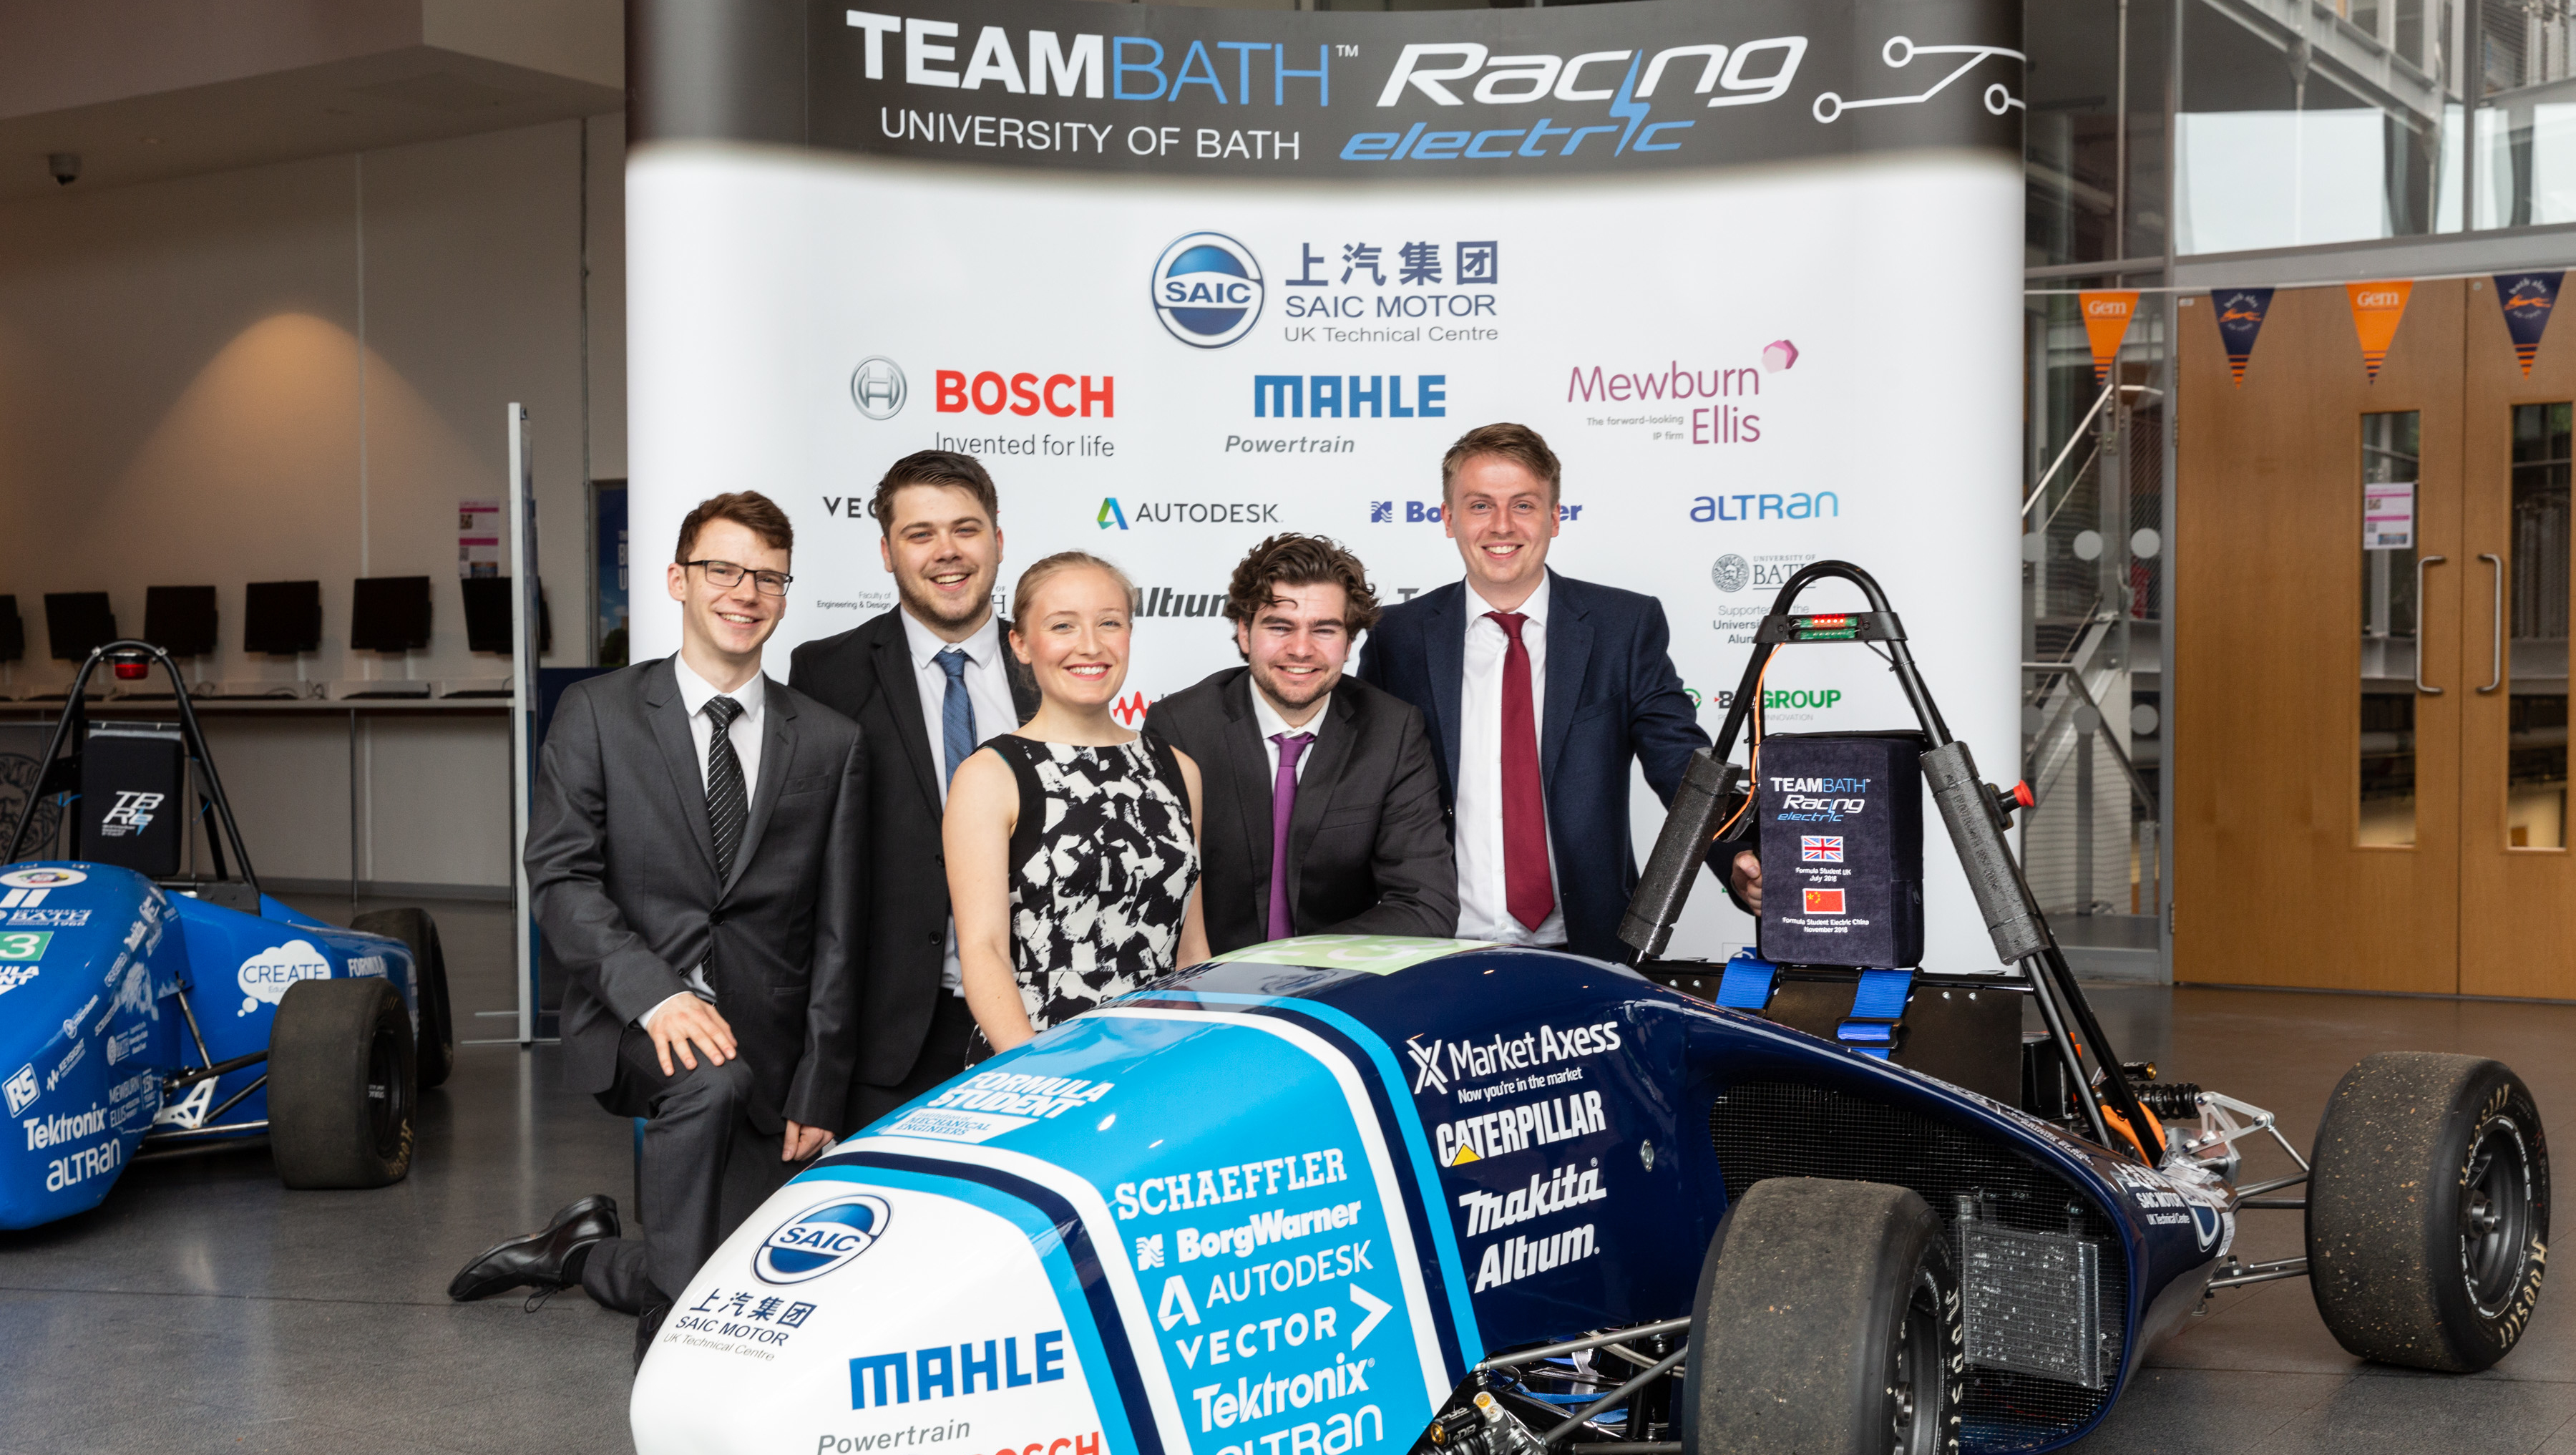 Team Bath Racing electric launch their 2018 car ahead of this year's Formula Student competition.